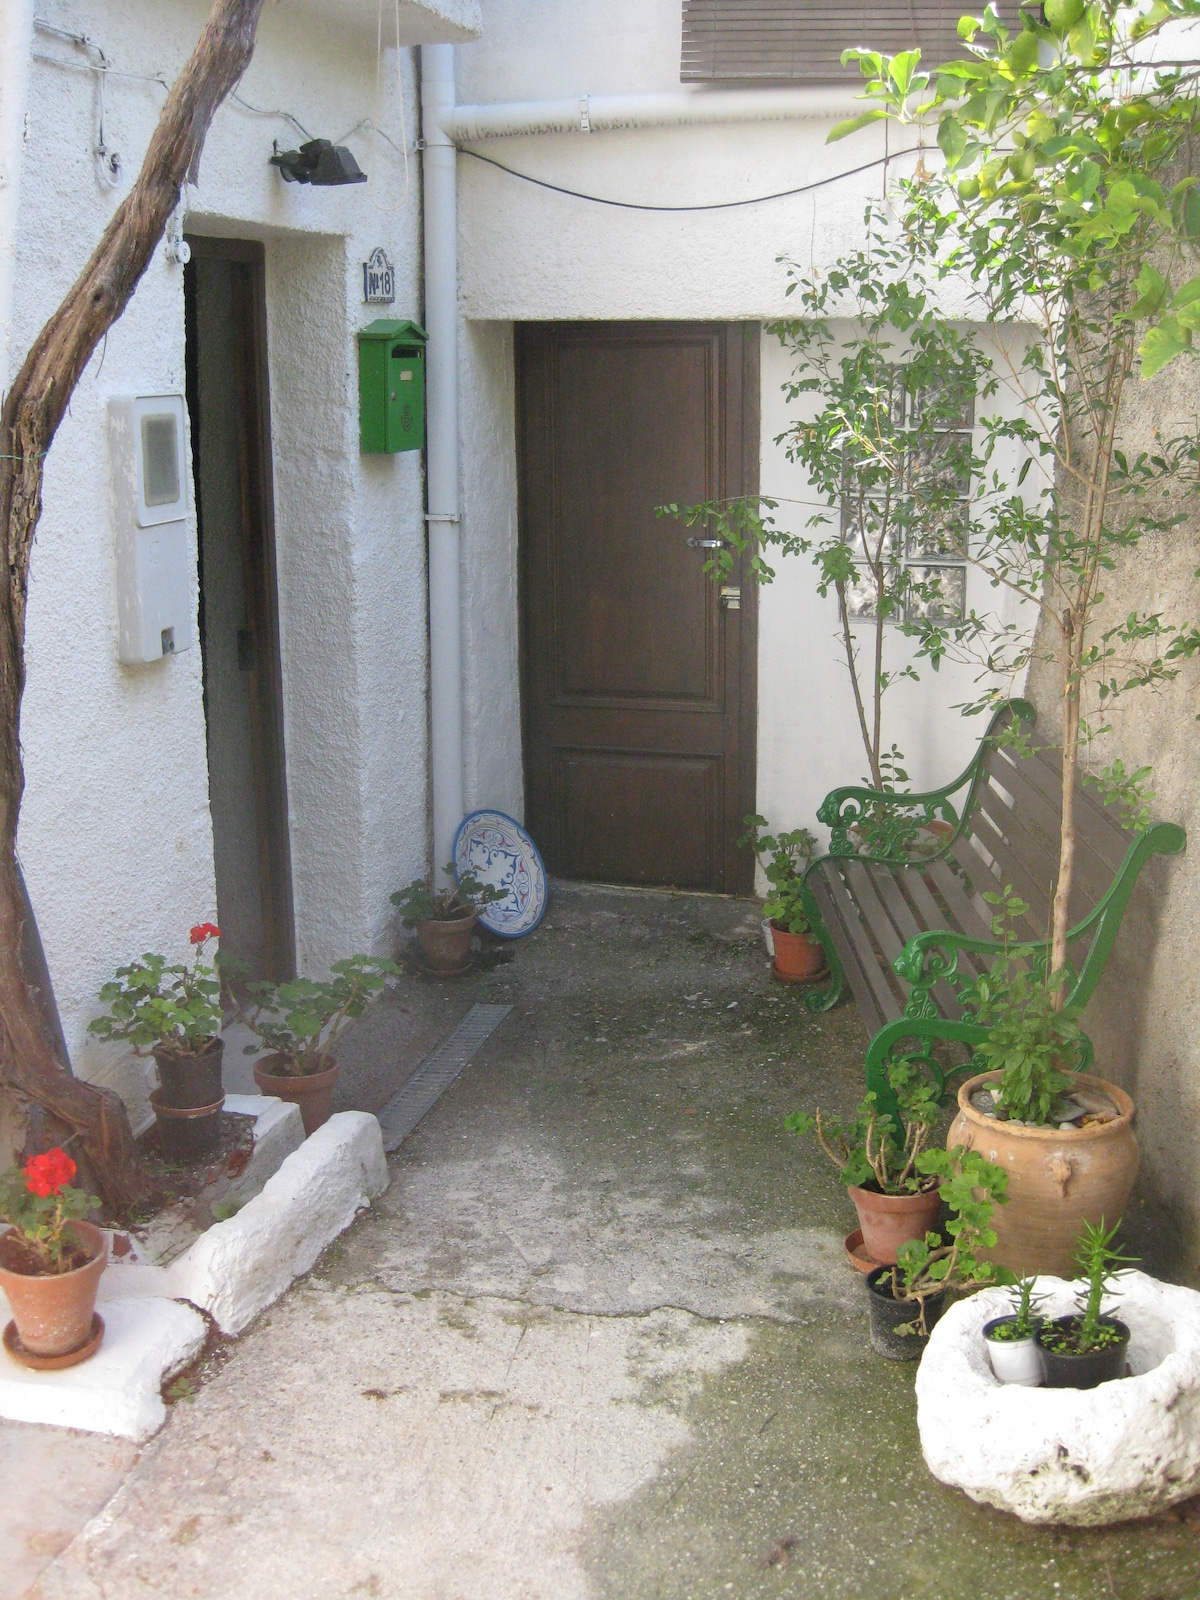 Entrance to the house. Front door on left.